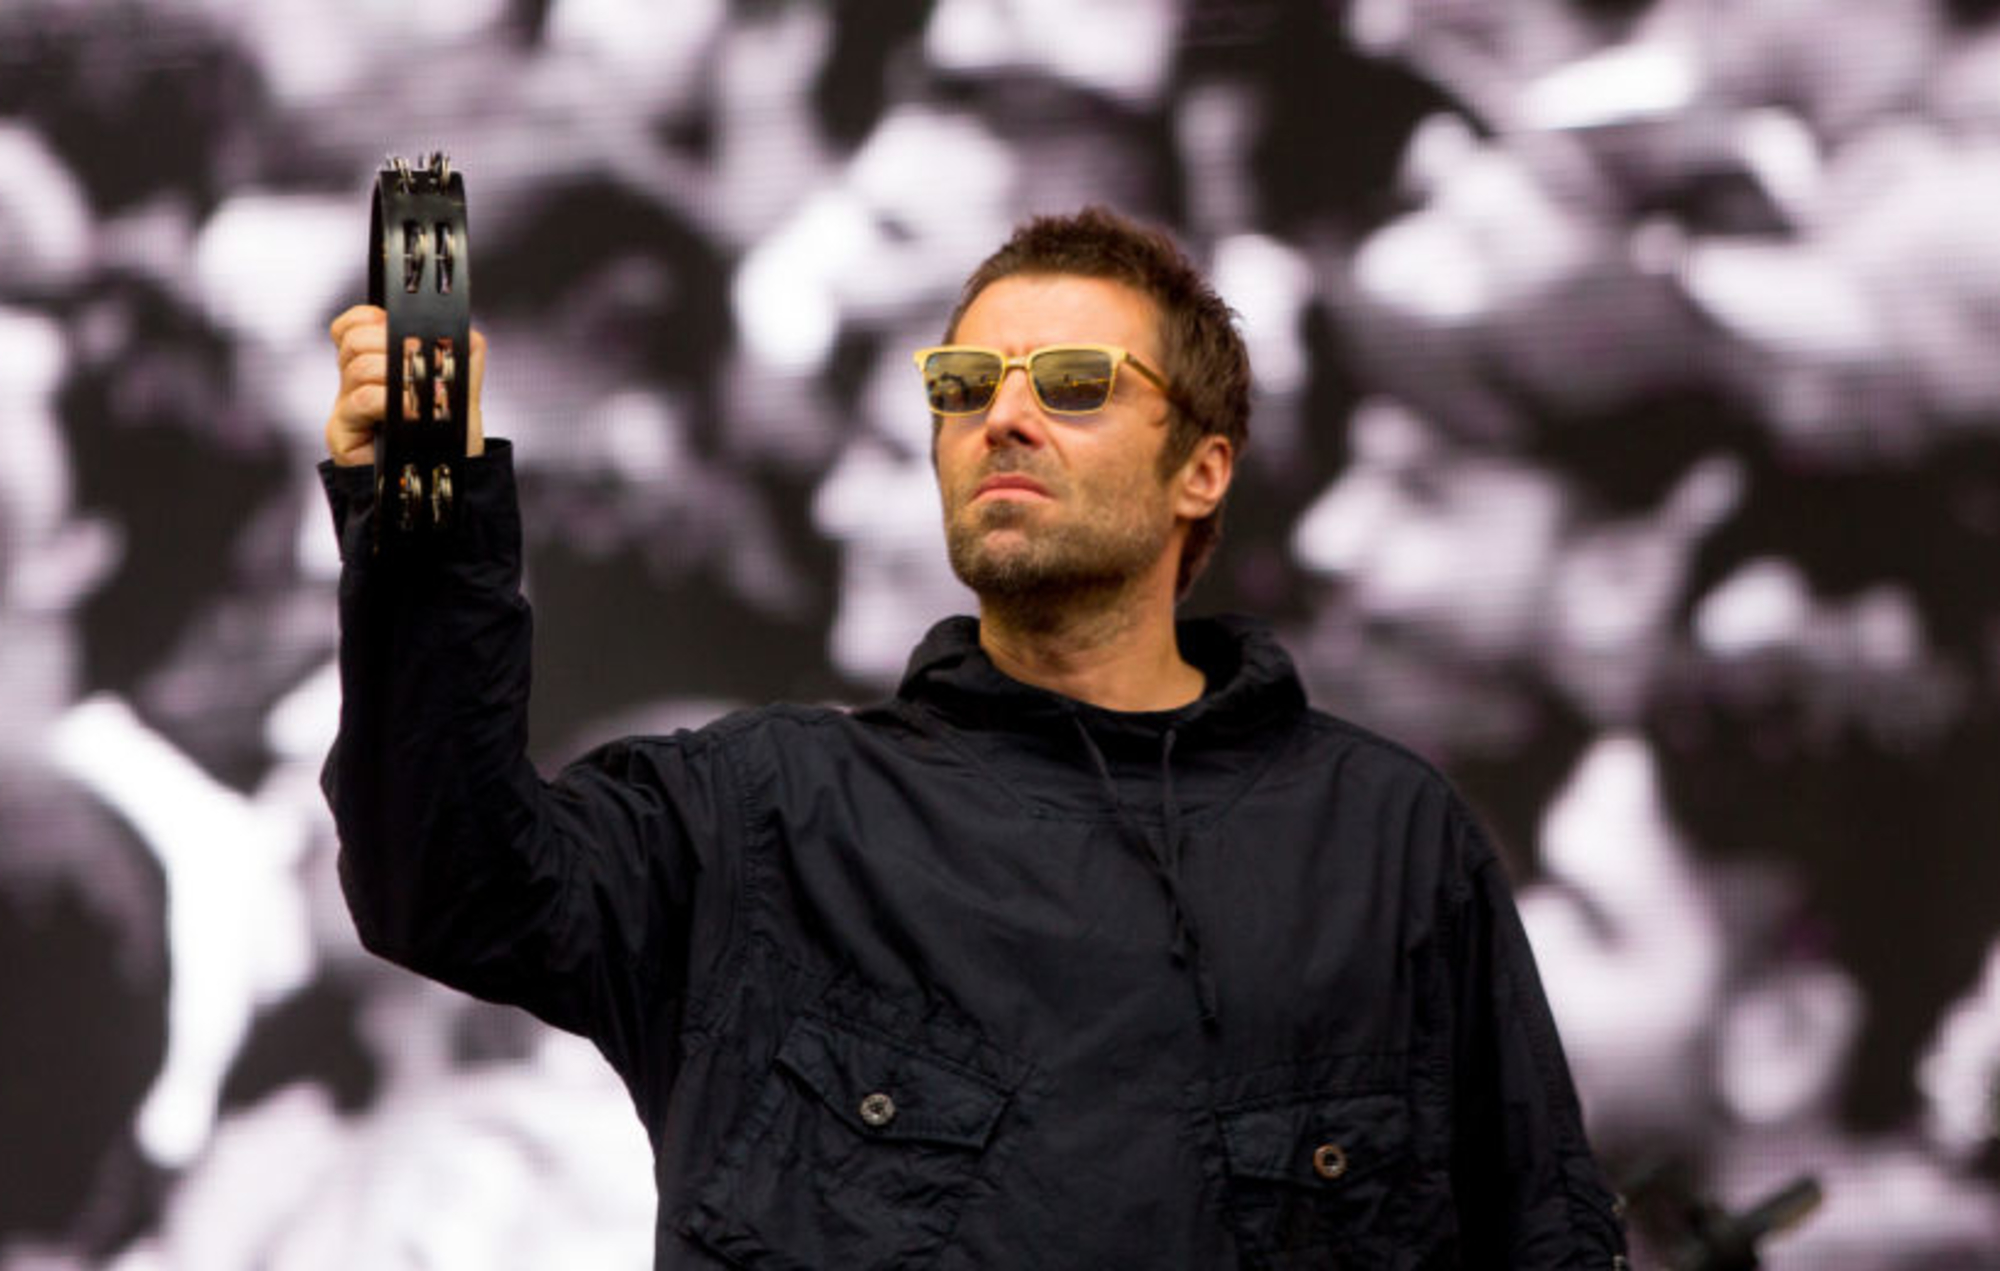 Liam Gallagher no participará en (What's The Story) Morning Glory